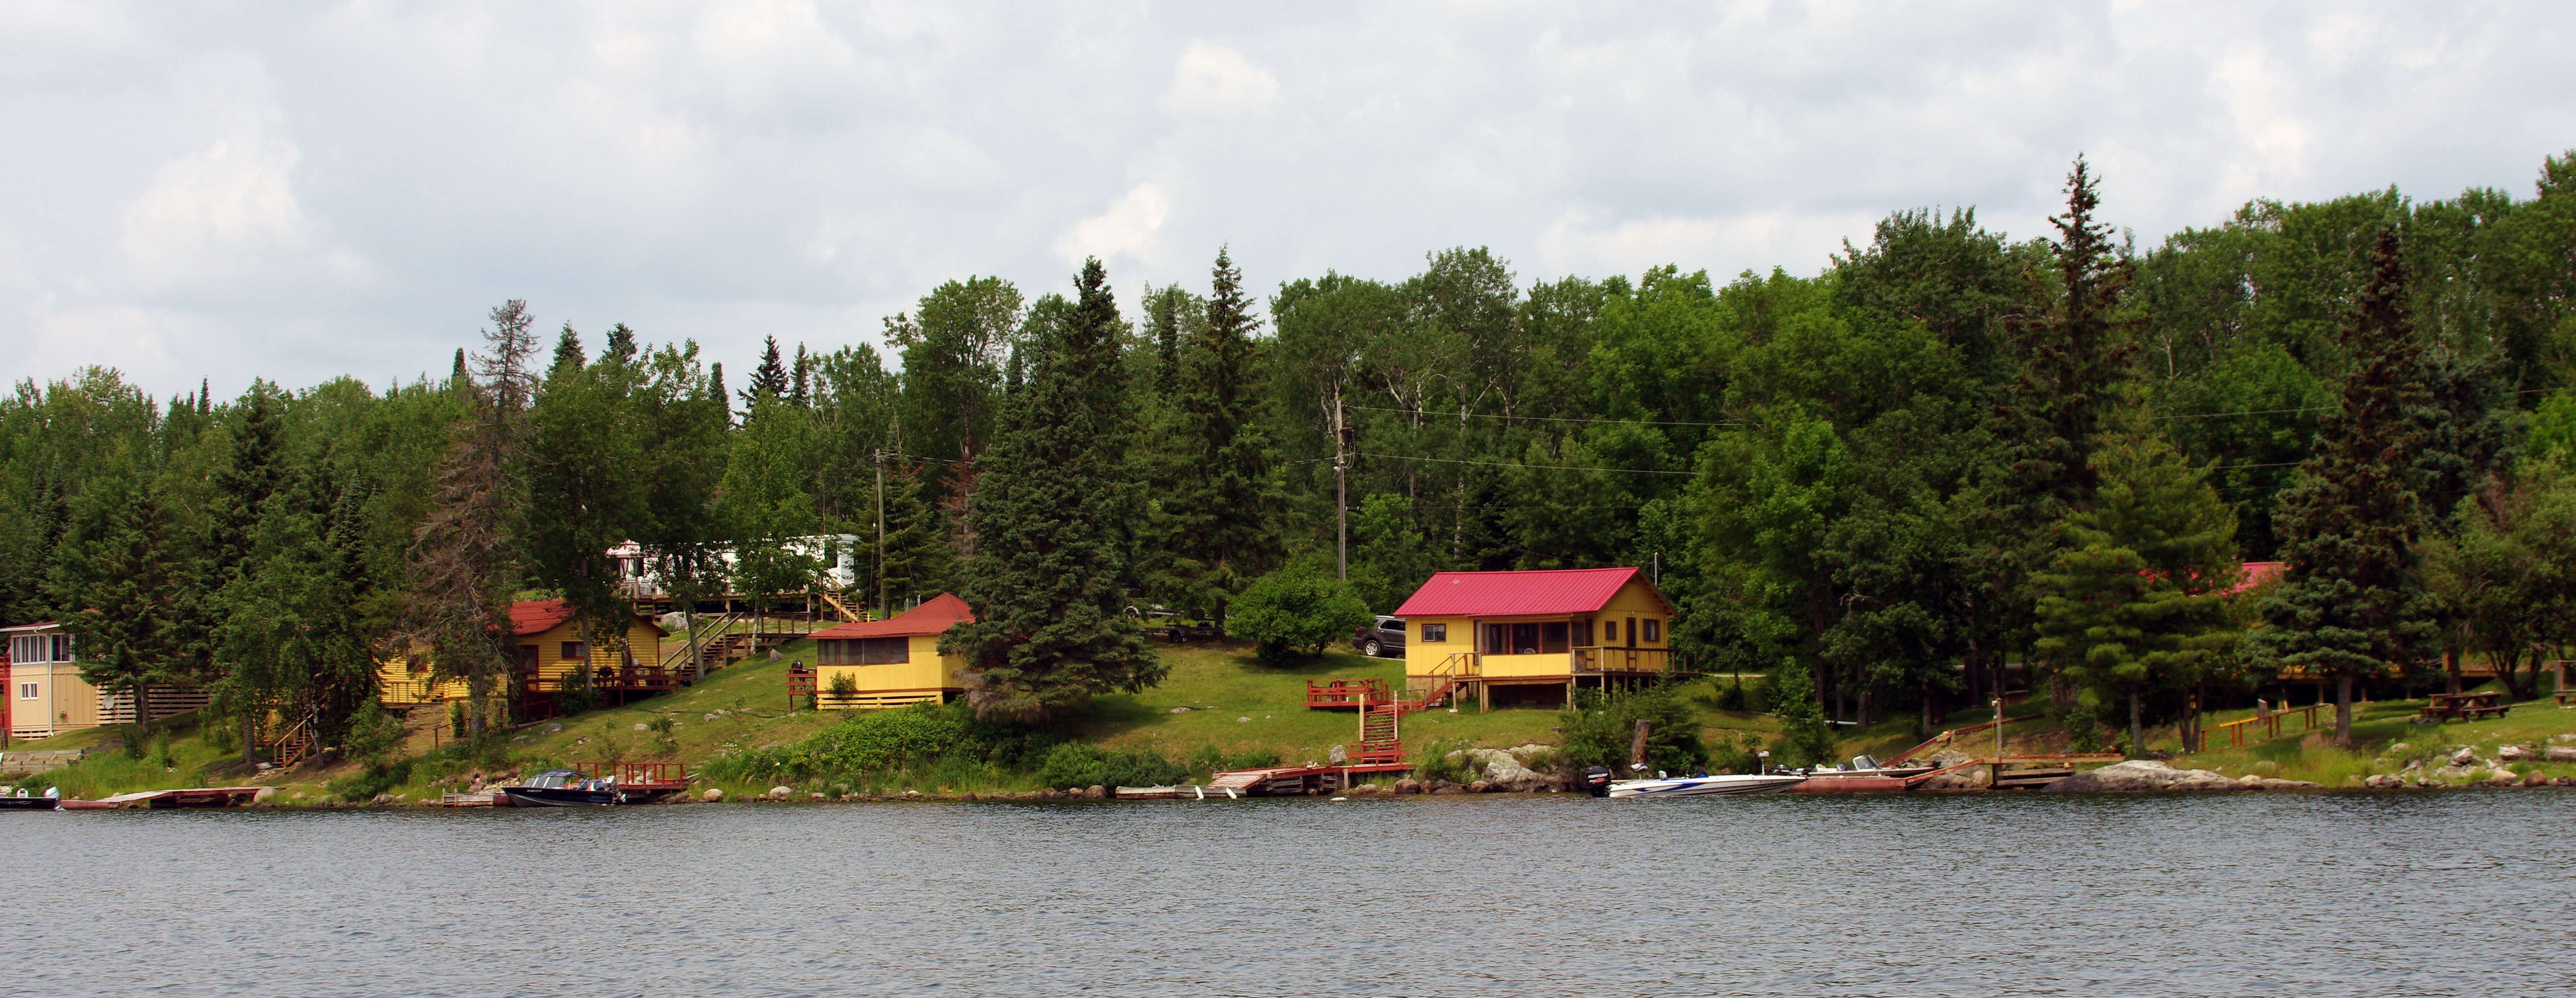 Sioux Narrows Lodges Houseboats And Campgrounds